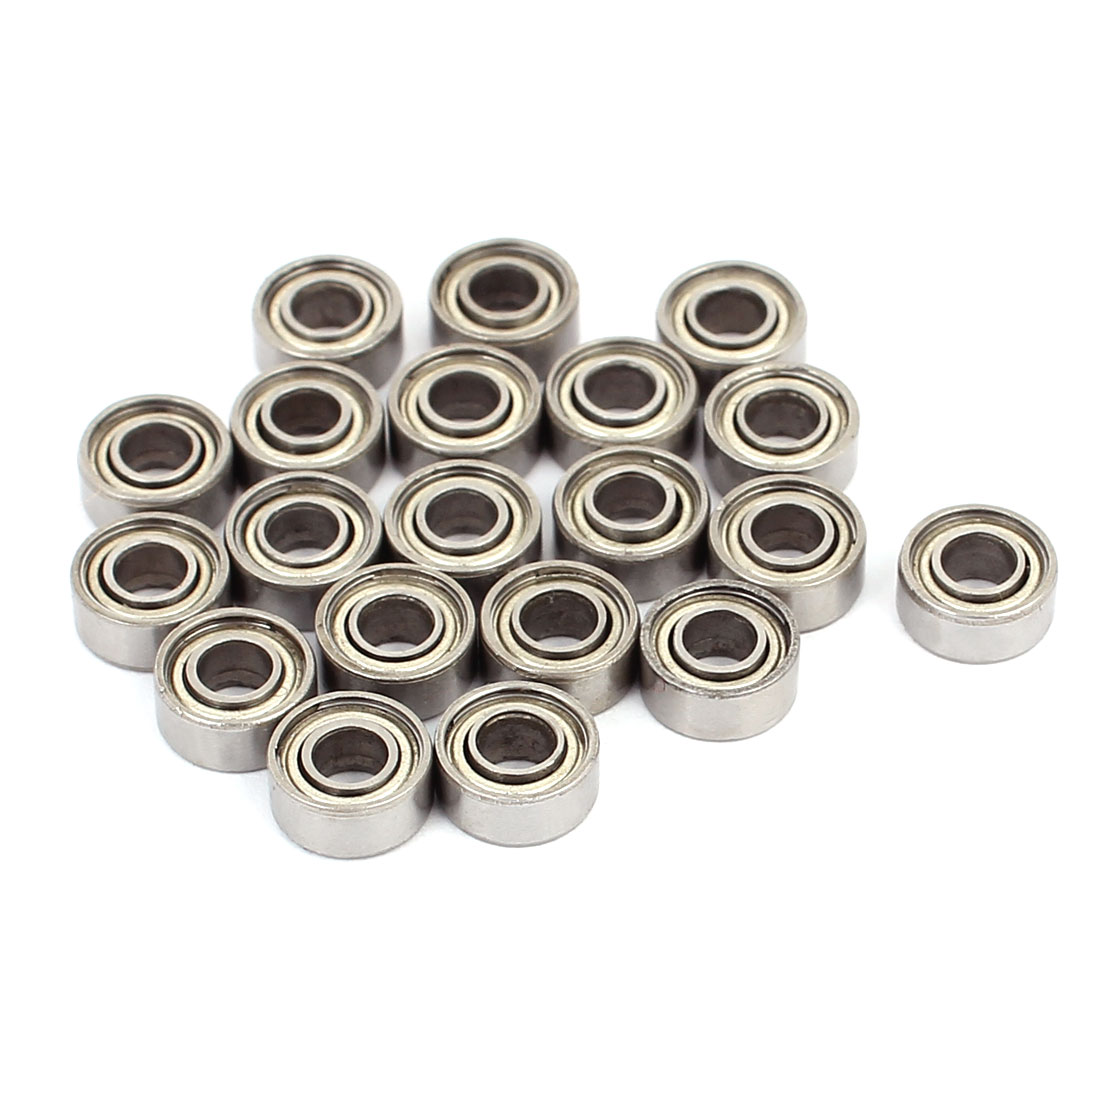 683ZZ Double Shielded Deep Groove Ball Bearing Silver Tone 7mmx3mmx3mm 20pcs